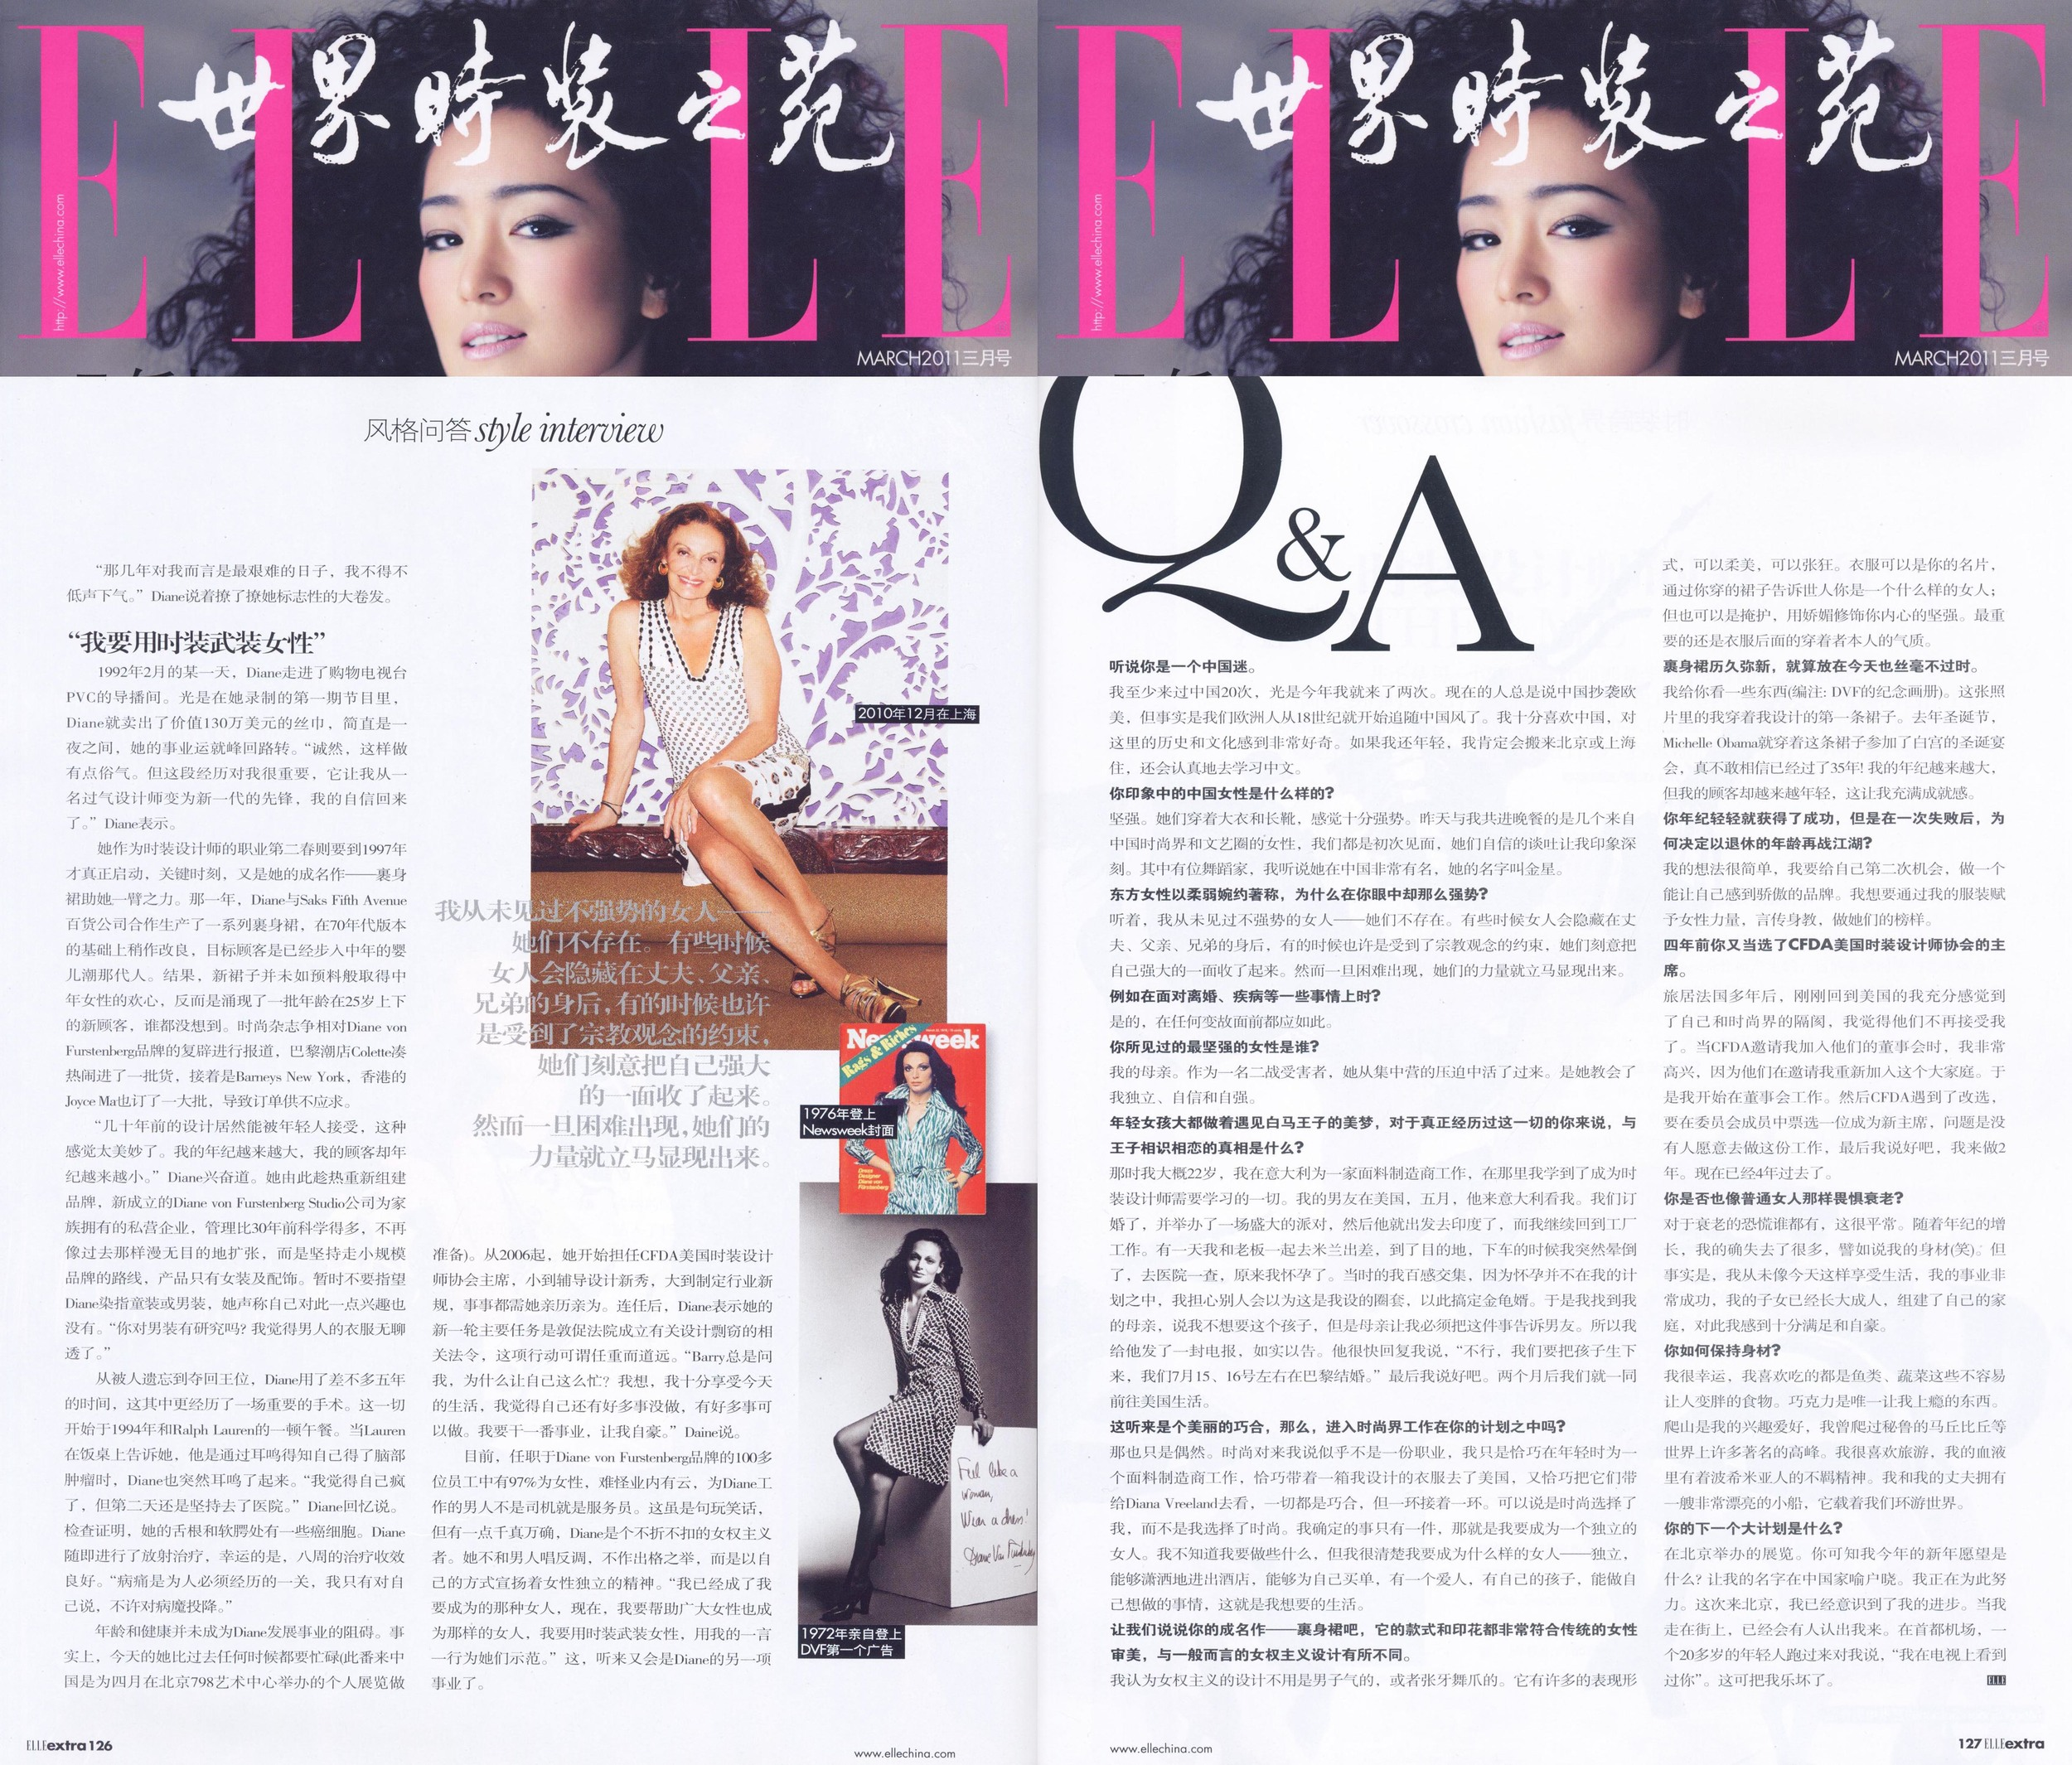 Elle China 04, March 2011.jpg